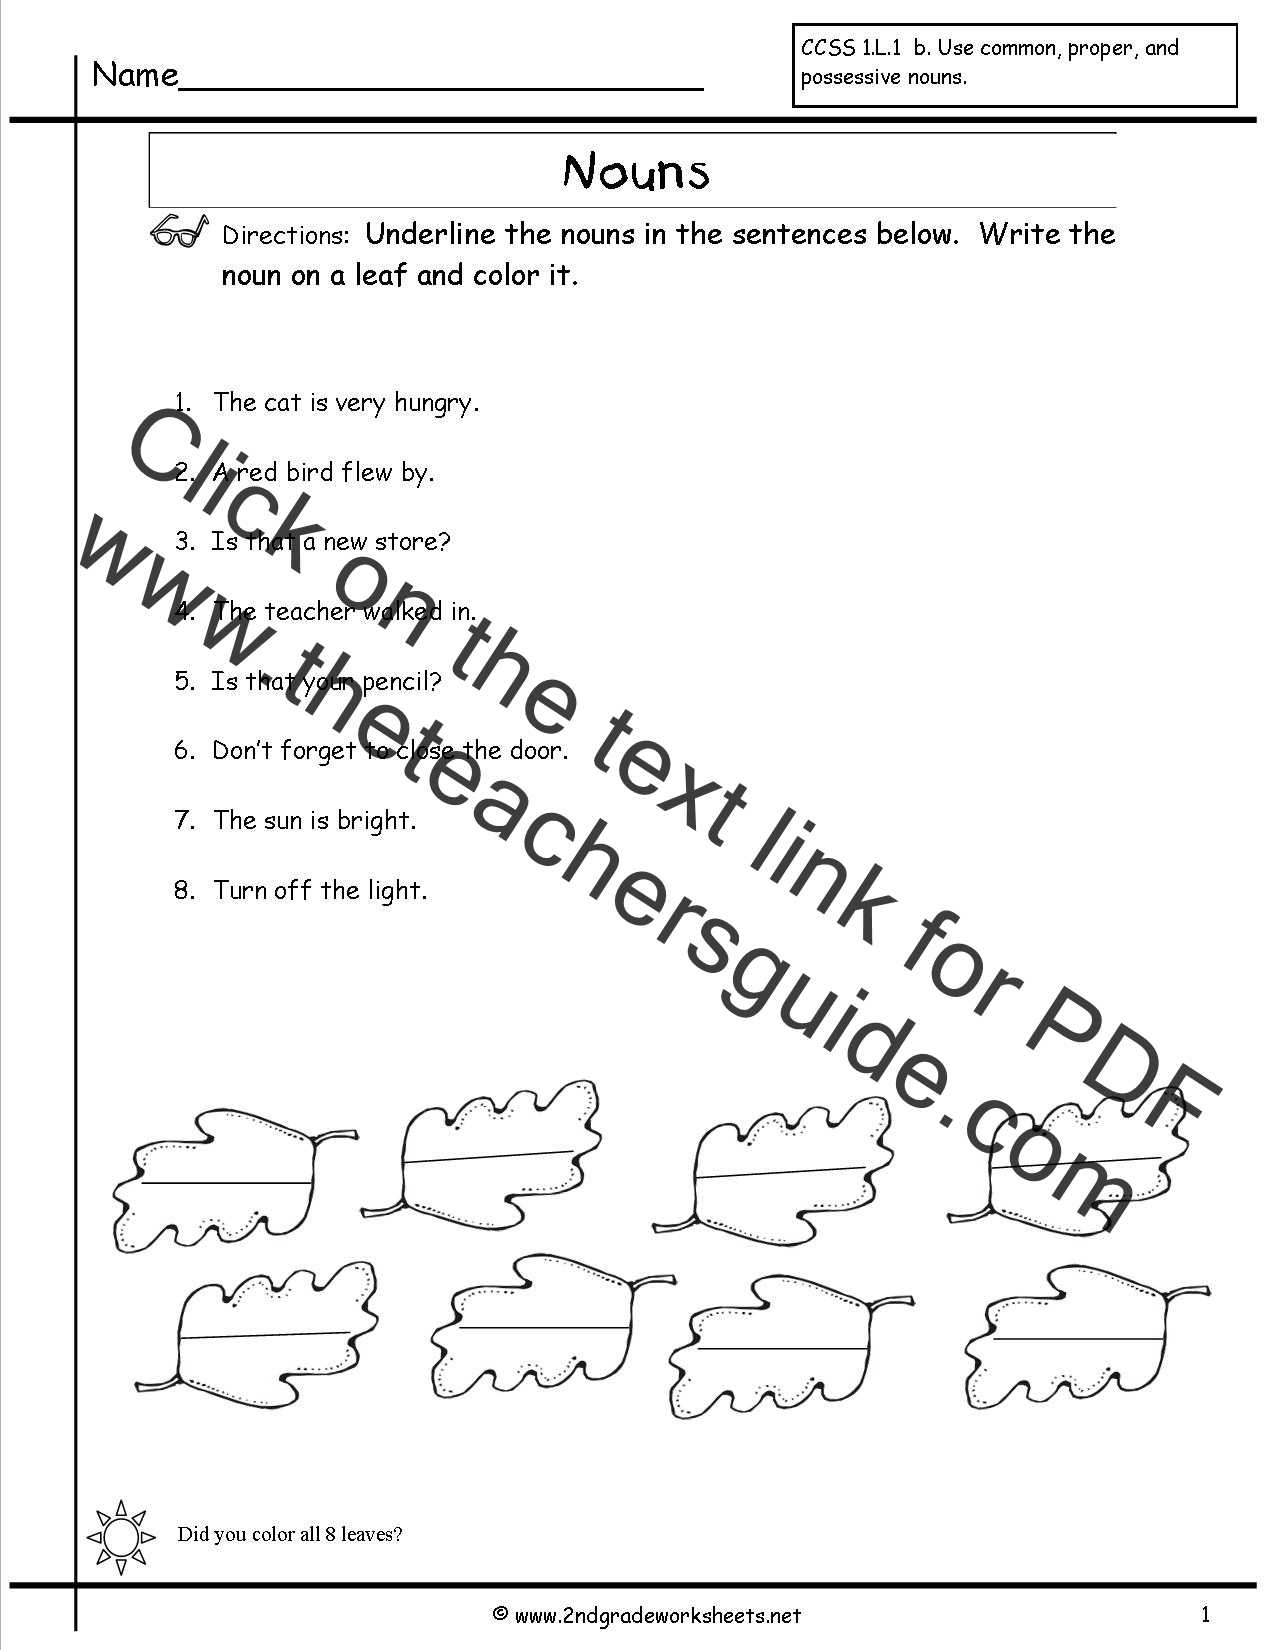 Worksheets Noun Worksheets For 1st Grade worksheets and printouts nouns worksheet